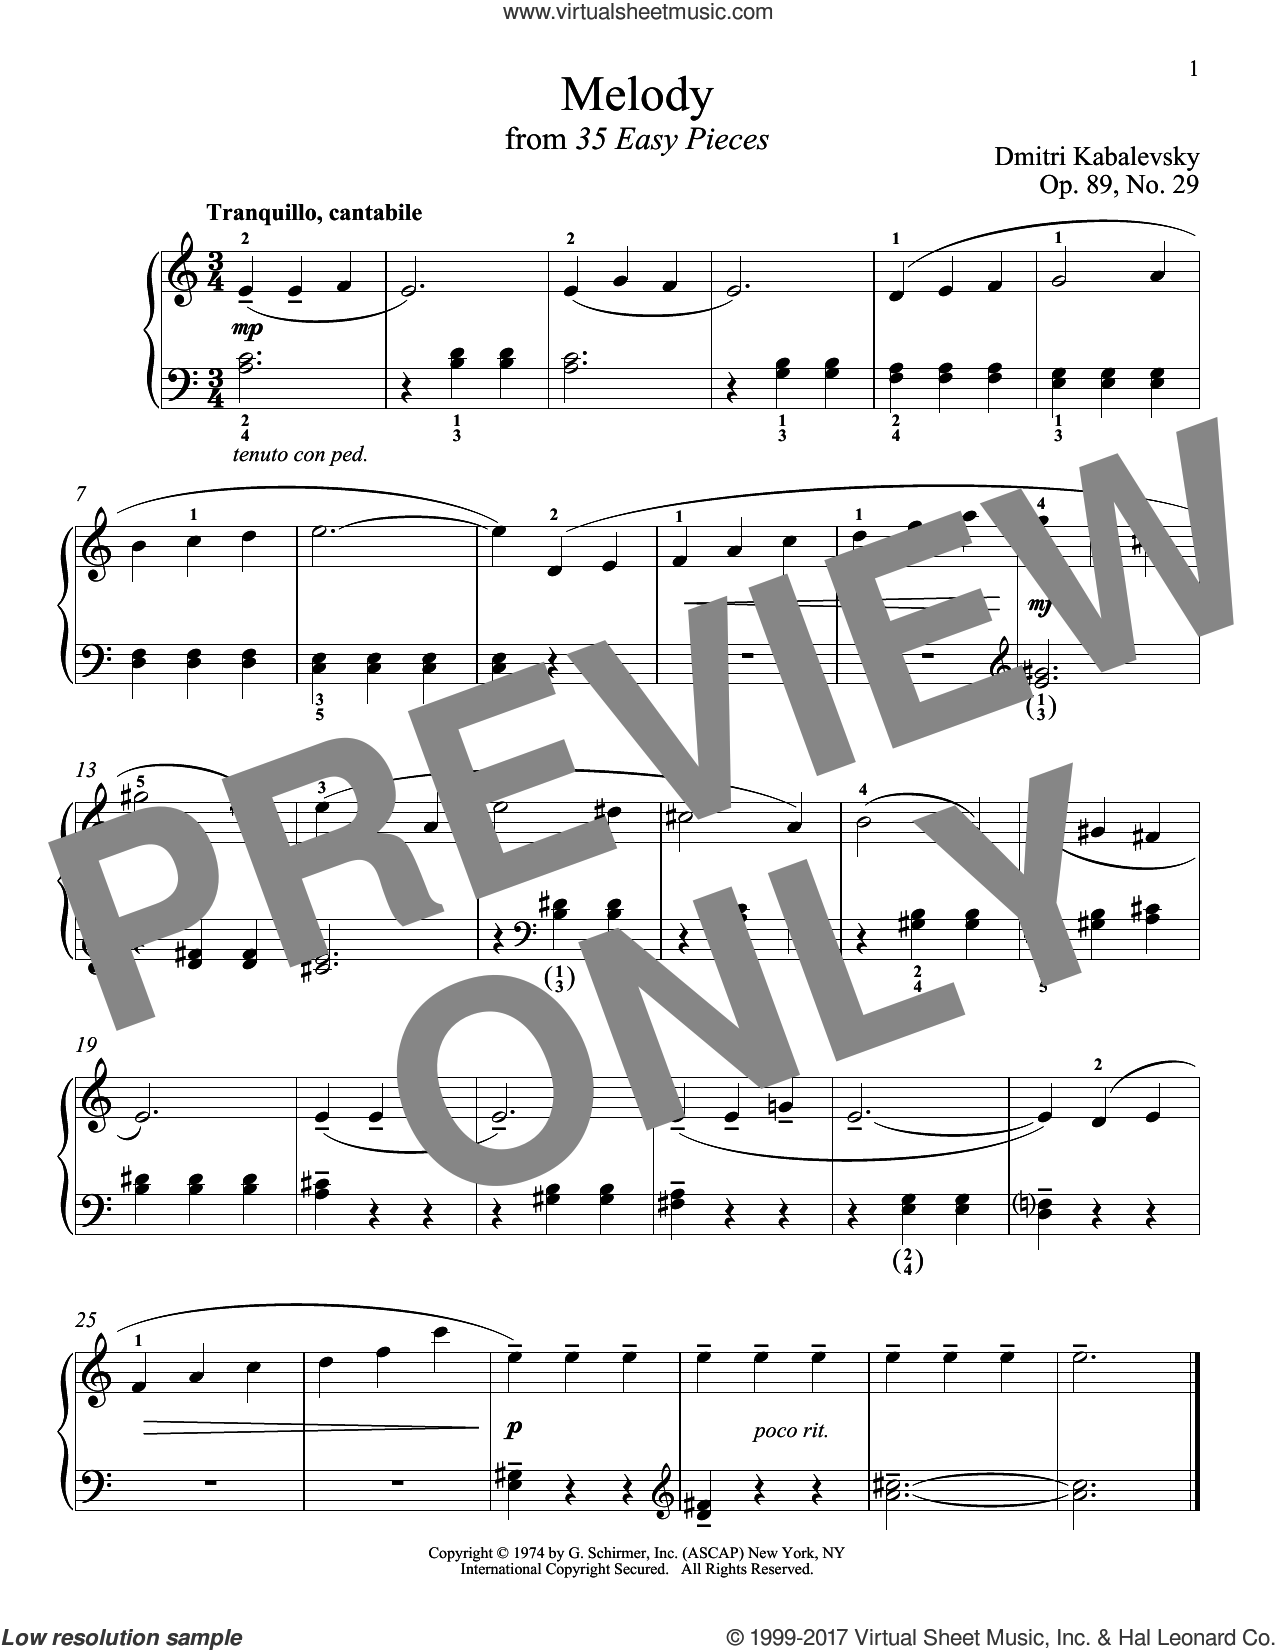 Melody, Op. 89, No. 29 sheet music for piano solo by Dmitri Kabalevsky, classical score, intermediate. Score Image Preview.